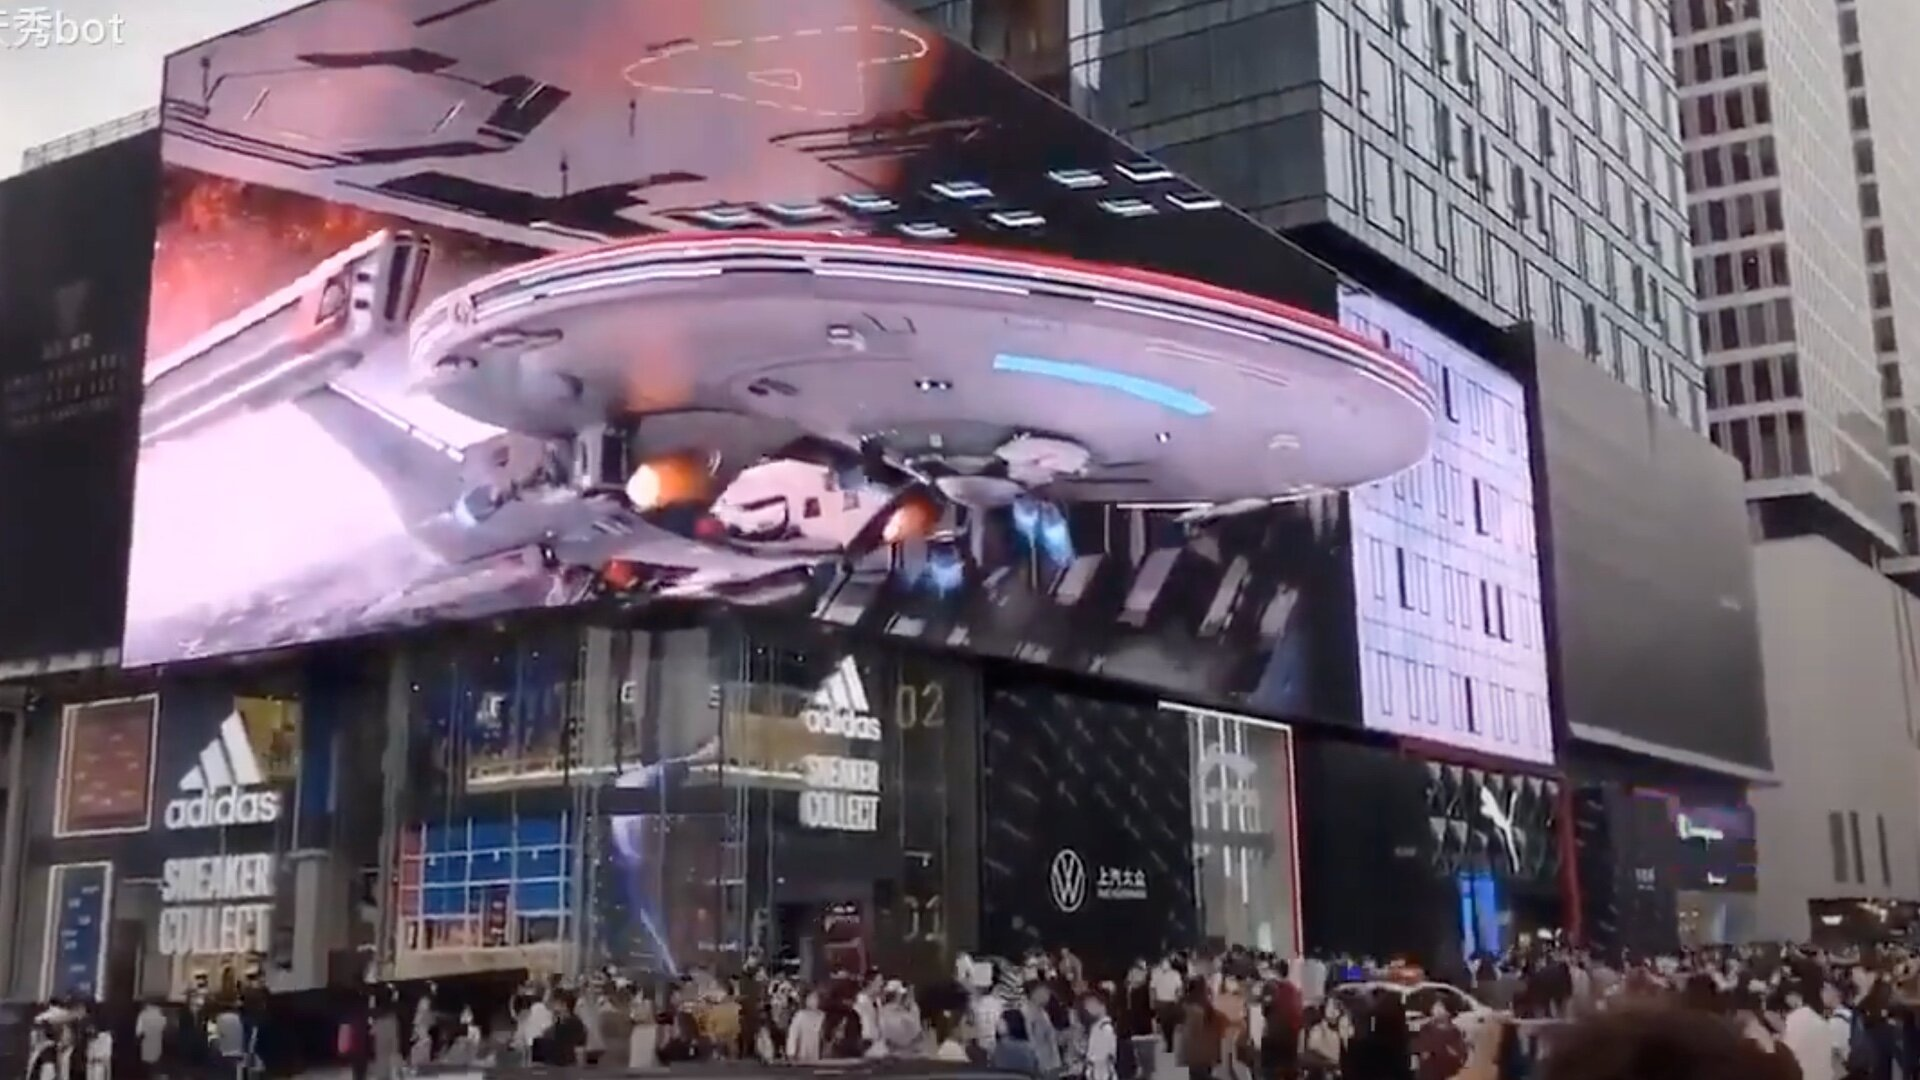 giant-digital-display-features-an-awesome-star-trek-3d-effect-social.jpg